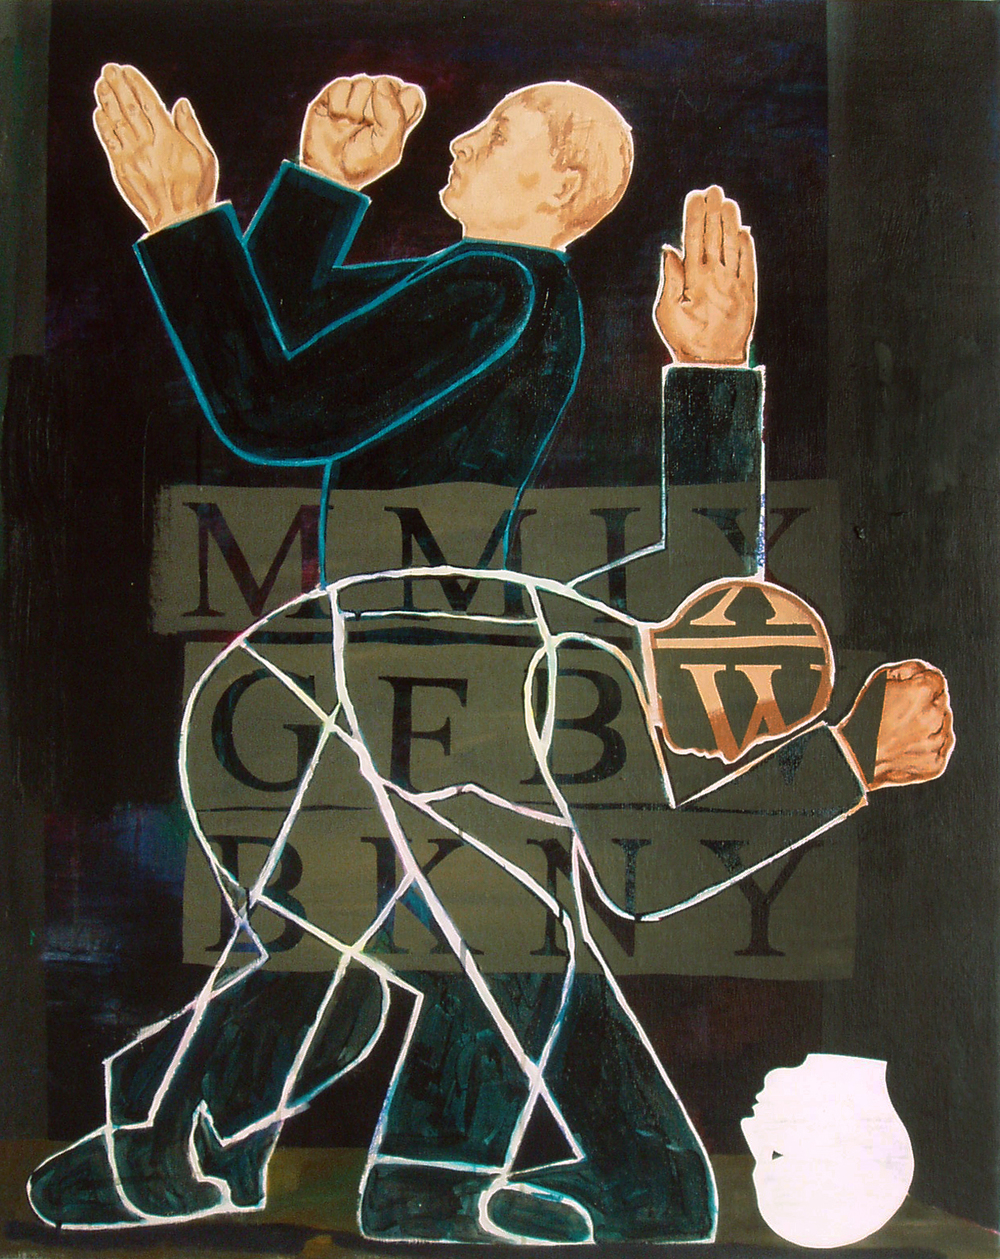 "Gabert Farrar  GFMMIXBDBKNY  Acrylic on canvas  35"" x 48"""